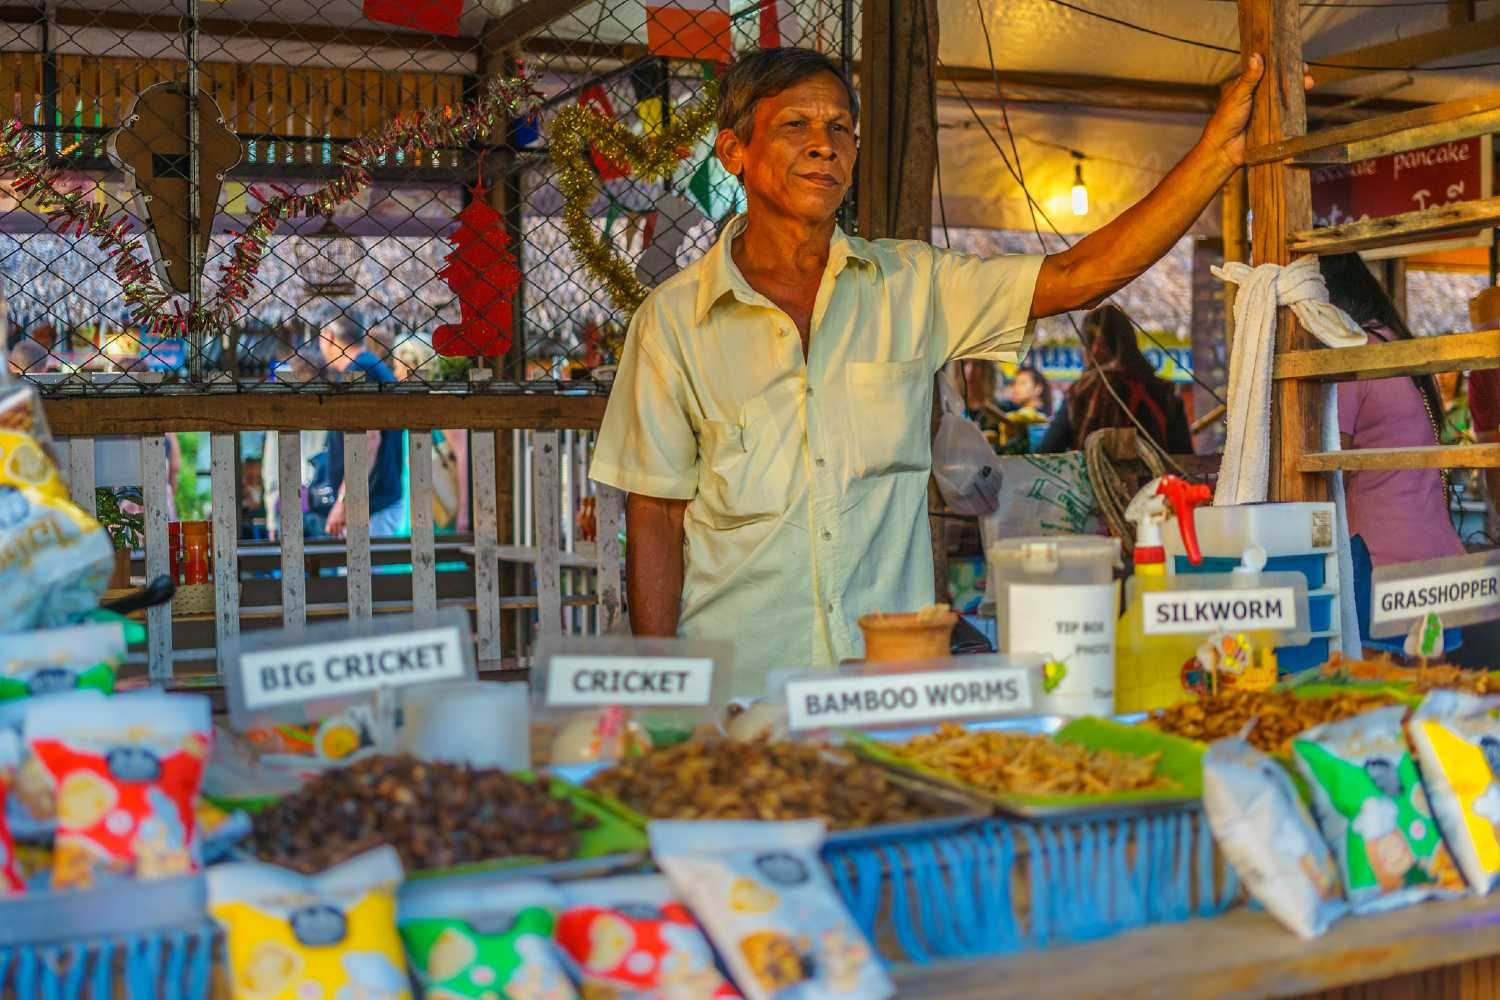 Bang Niang Market, seller of fried insects behind his market stall